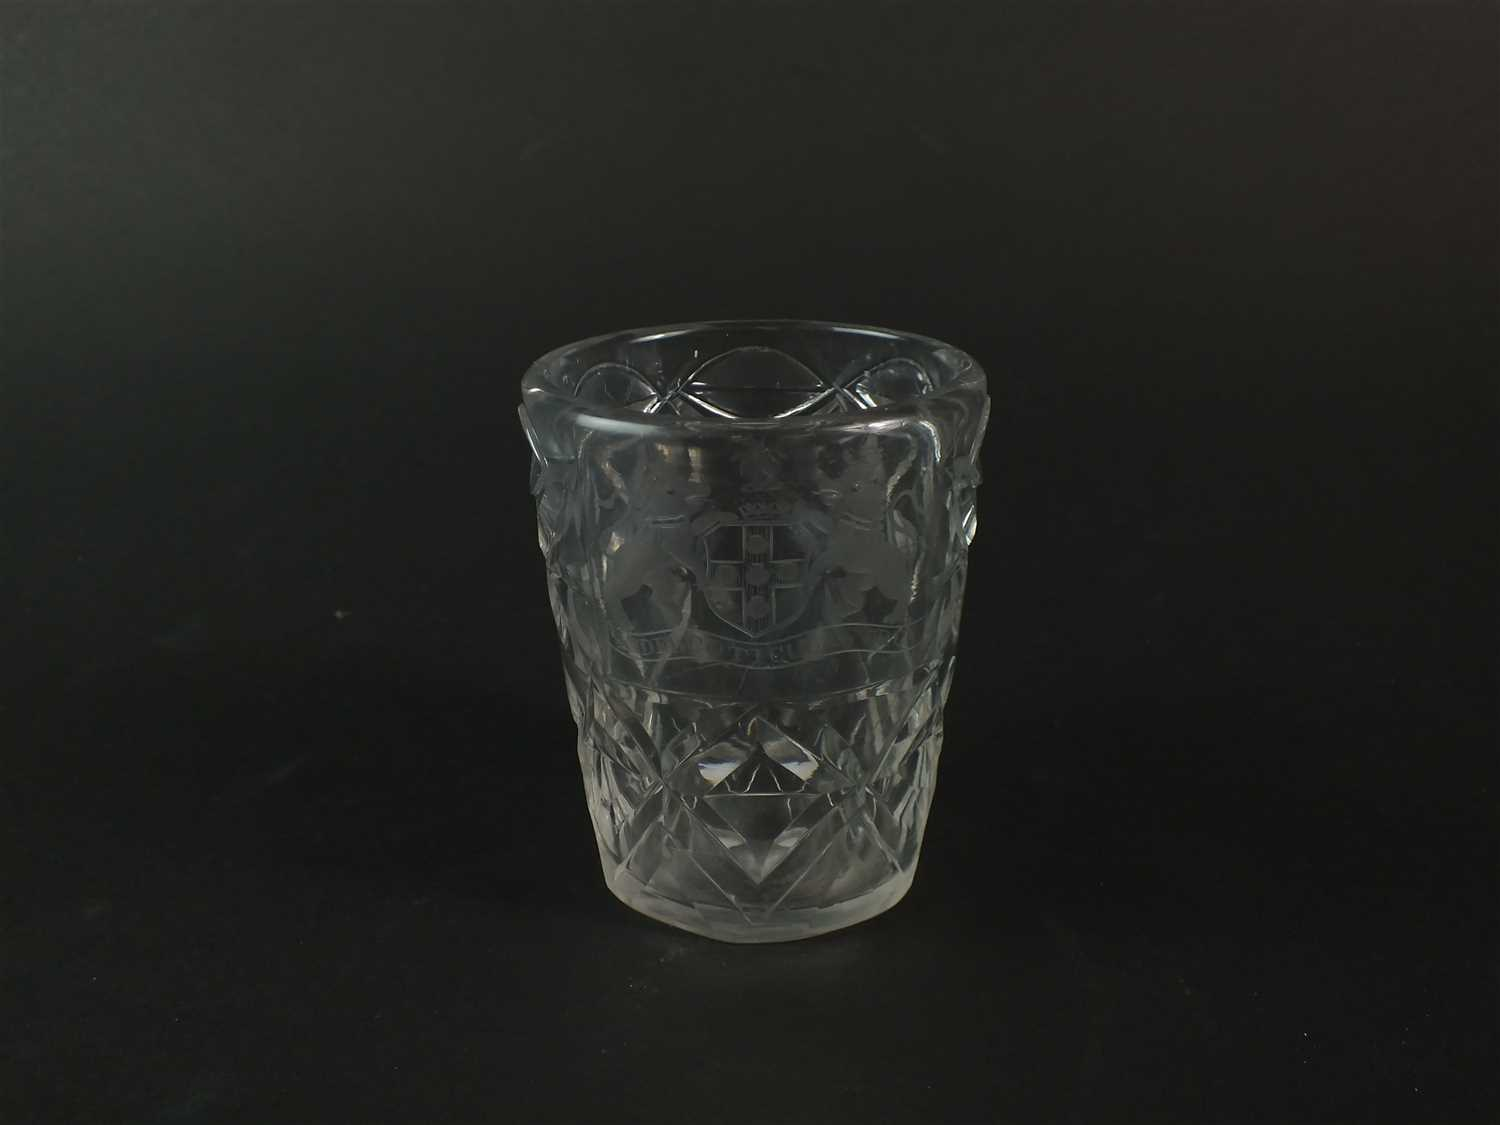 Lot 111-An 18th century glass tumbler